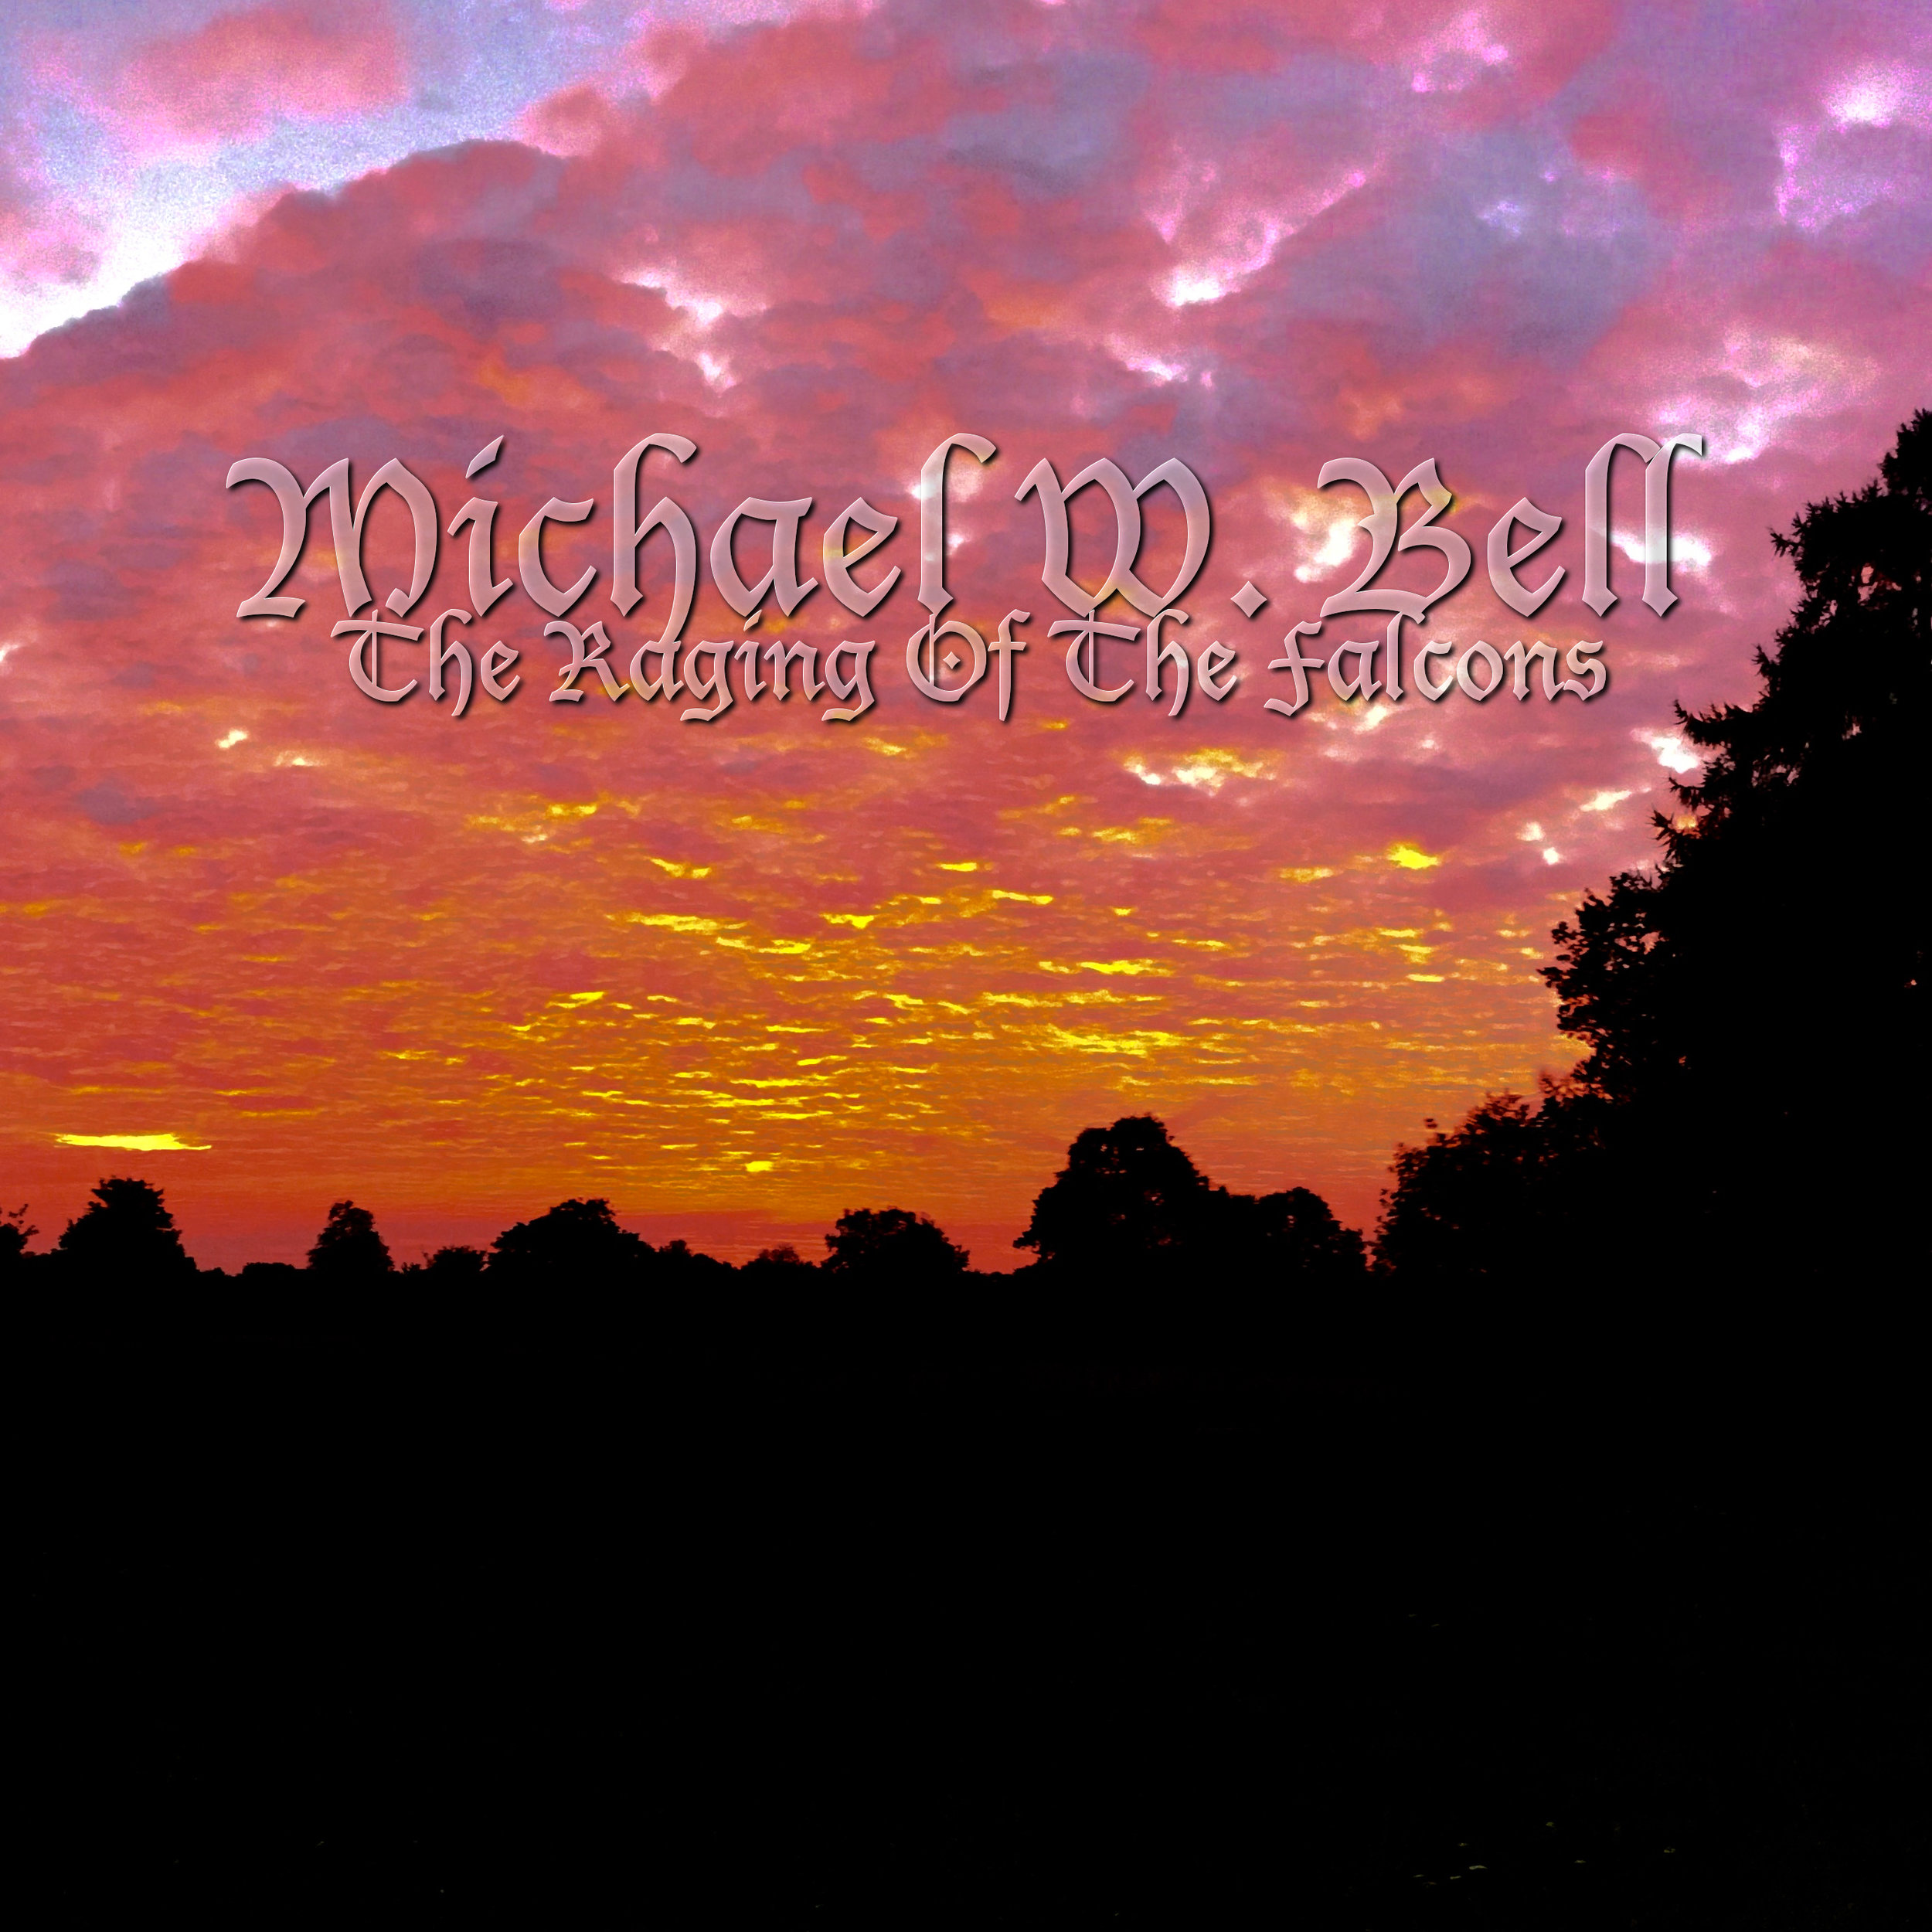 MICHAEL W. BELL - The Raging Of The Falcons - AEP0005 - Single